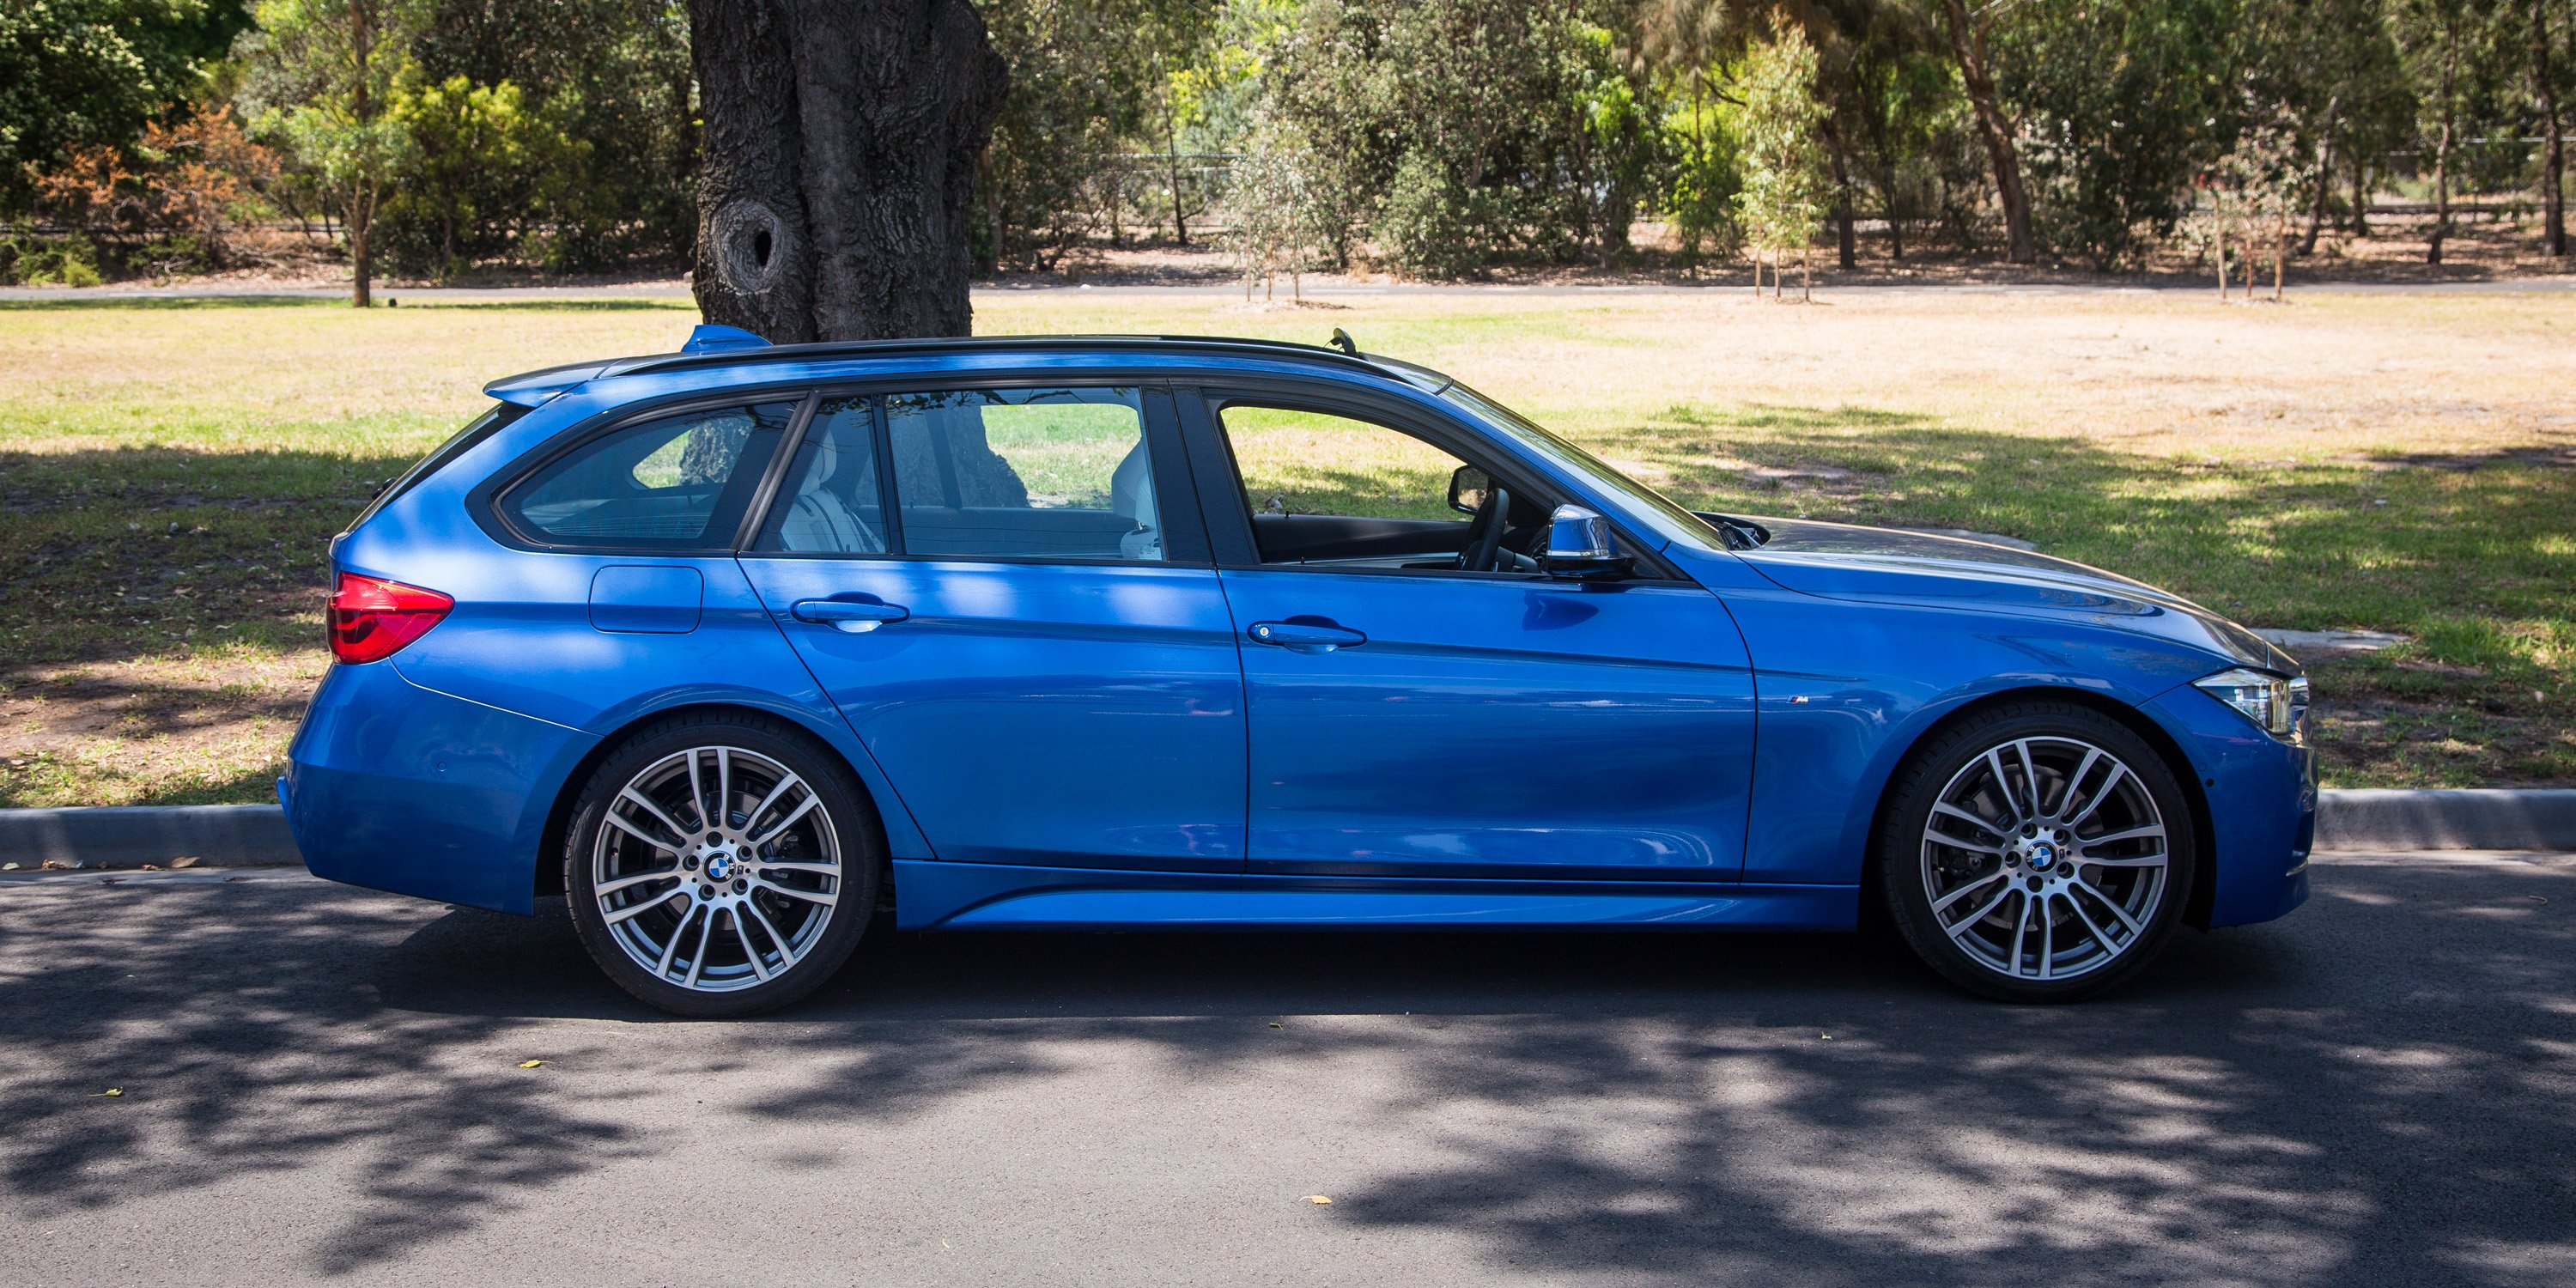 2016 BMW 330i M-Sport Touring Review - photos | CarAdvice